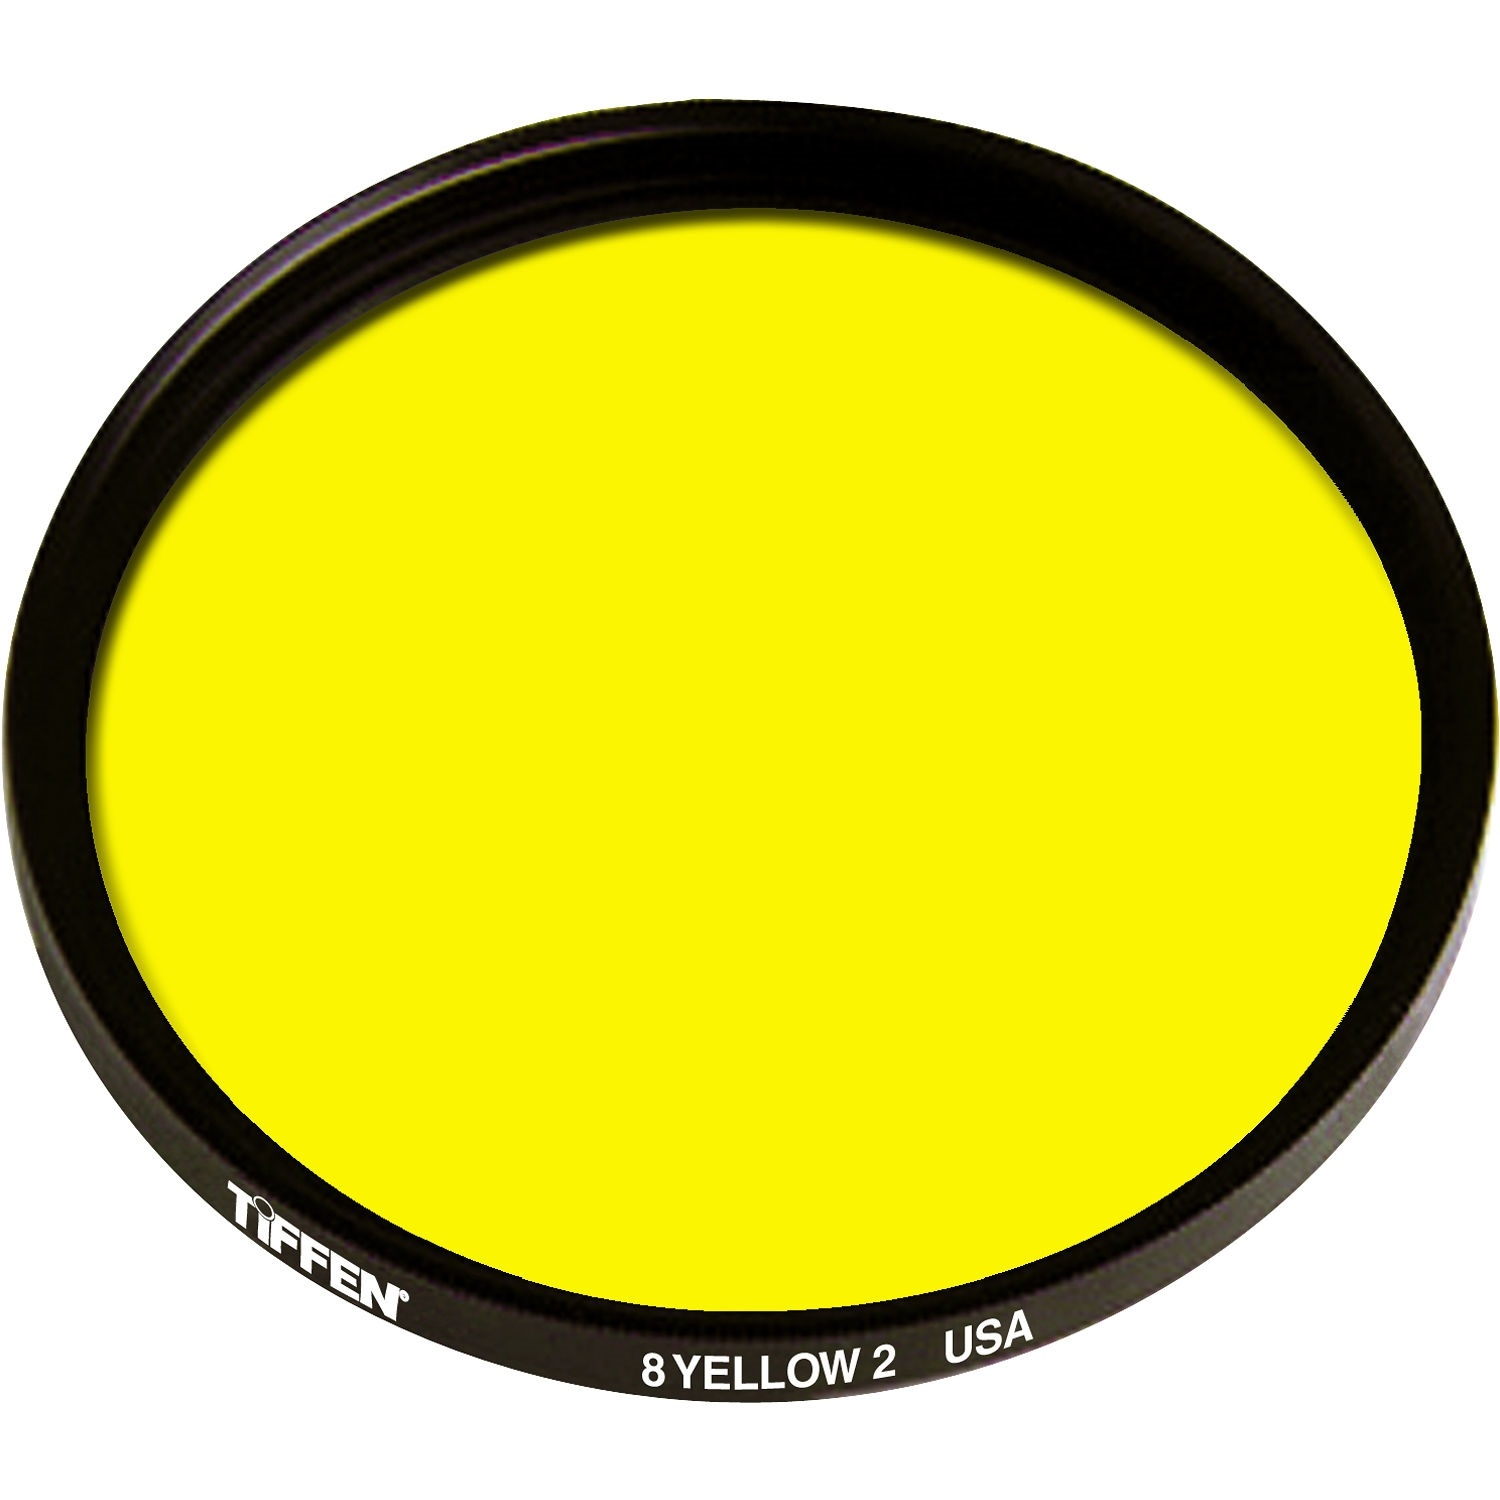 Tiffen 77mm Yellow 2 8 Glass Filter for Black & White Film